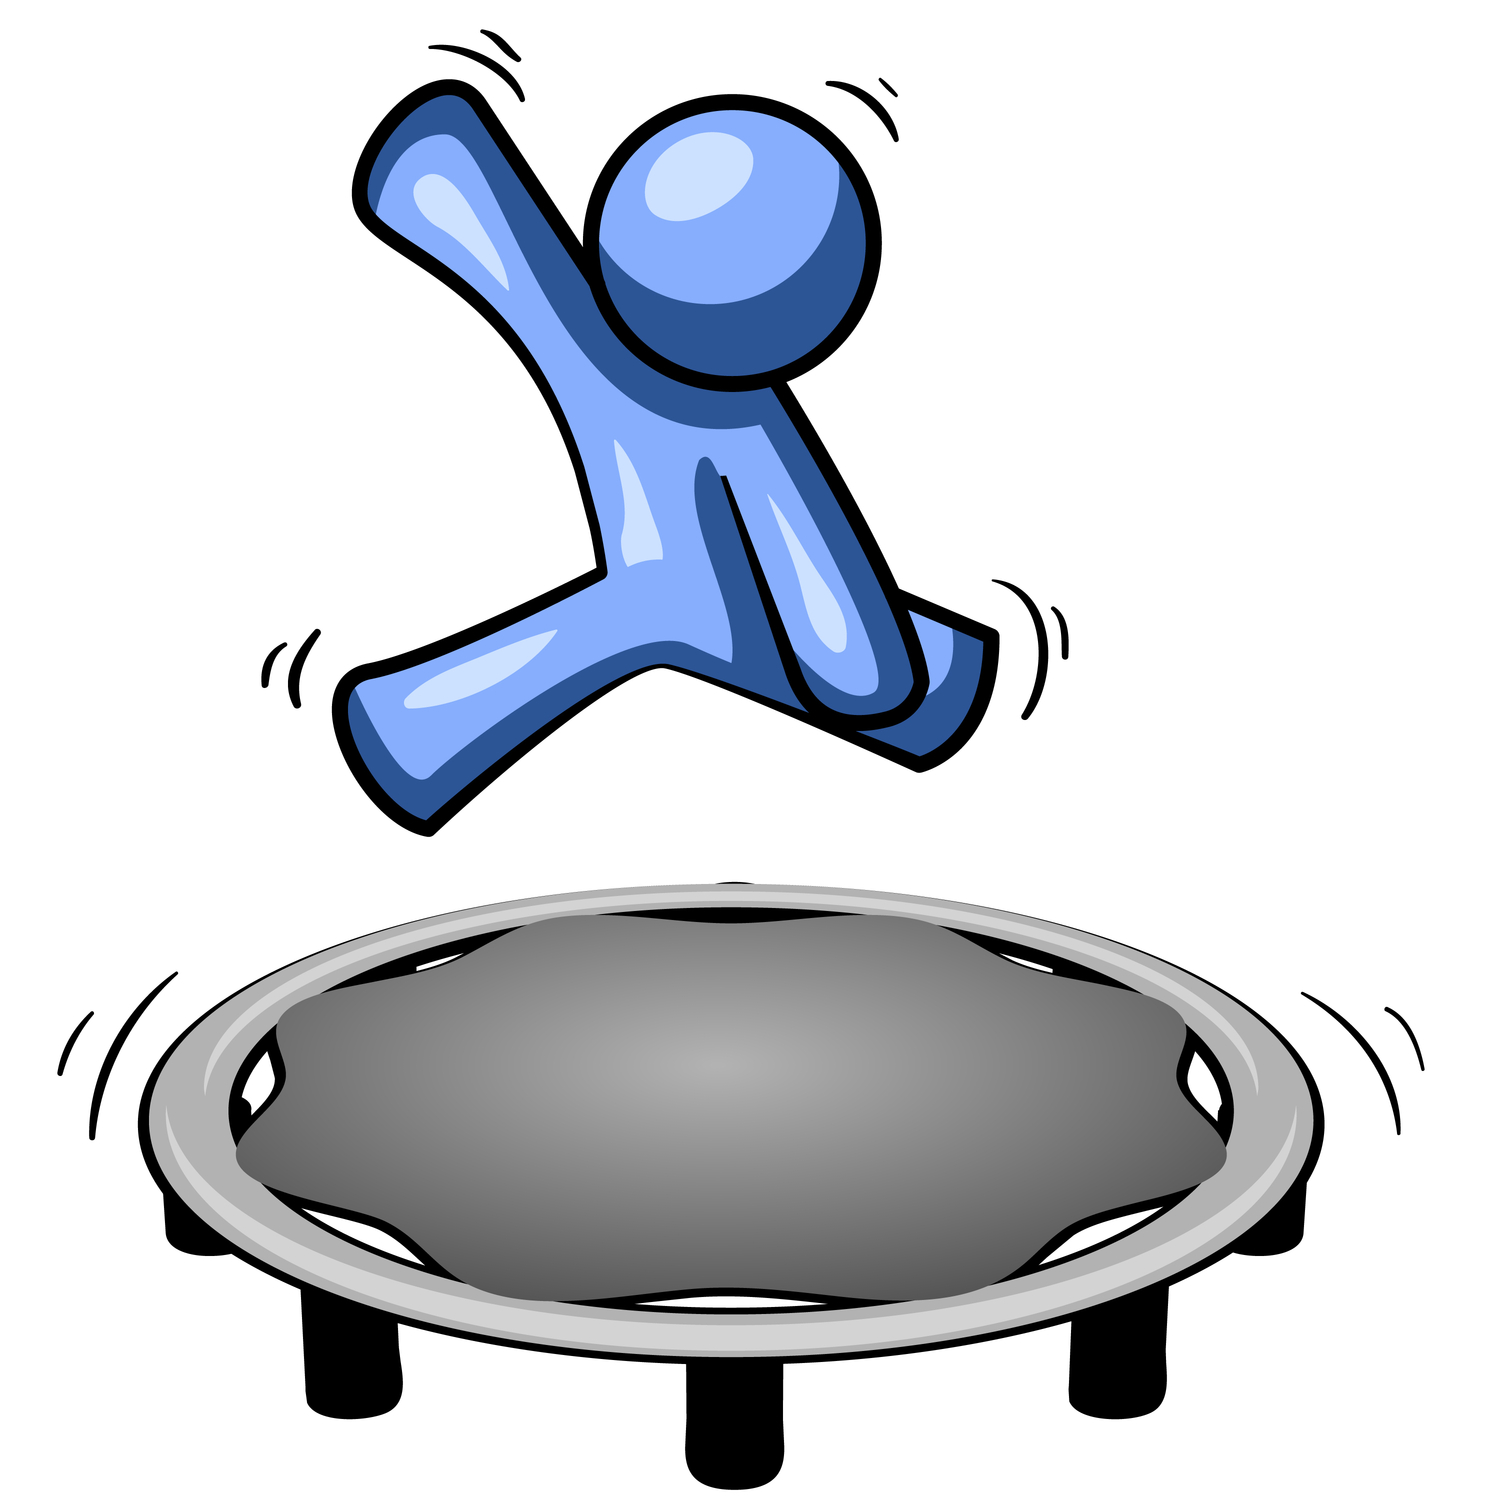 Trampline clipart graphic freeuse stock on a Trampoline Clipart | Clipart Panda - Free Clipart Images graphic freeuse stock